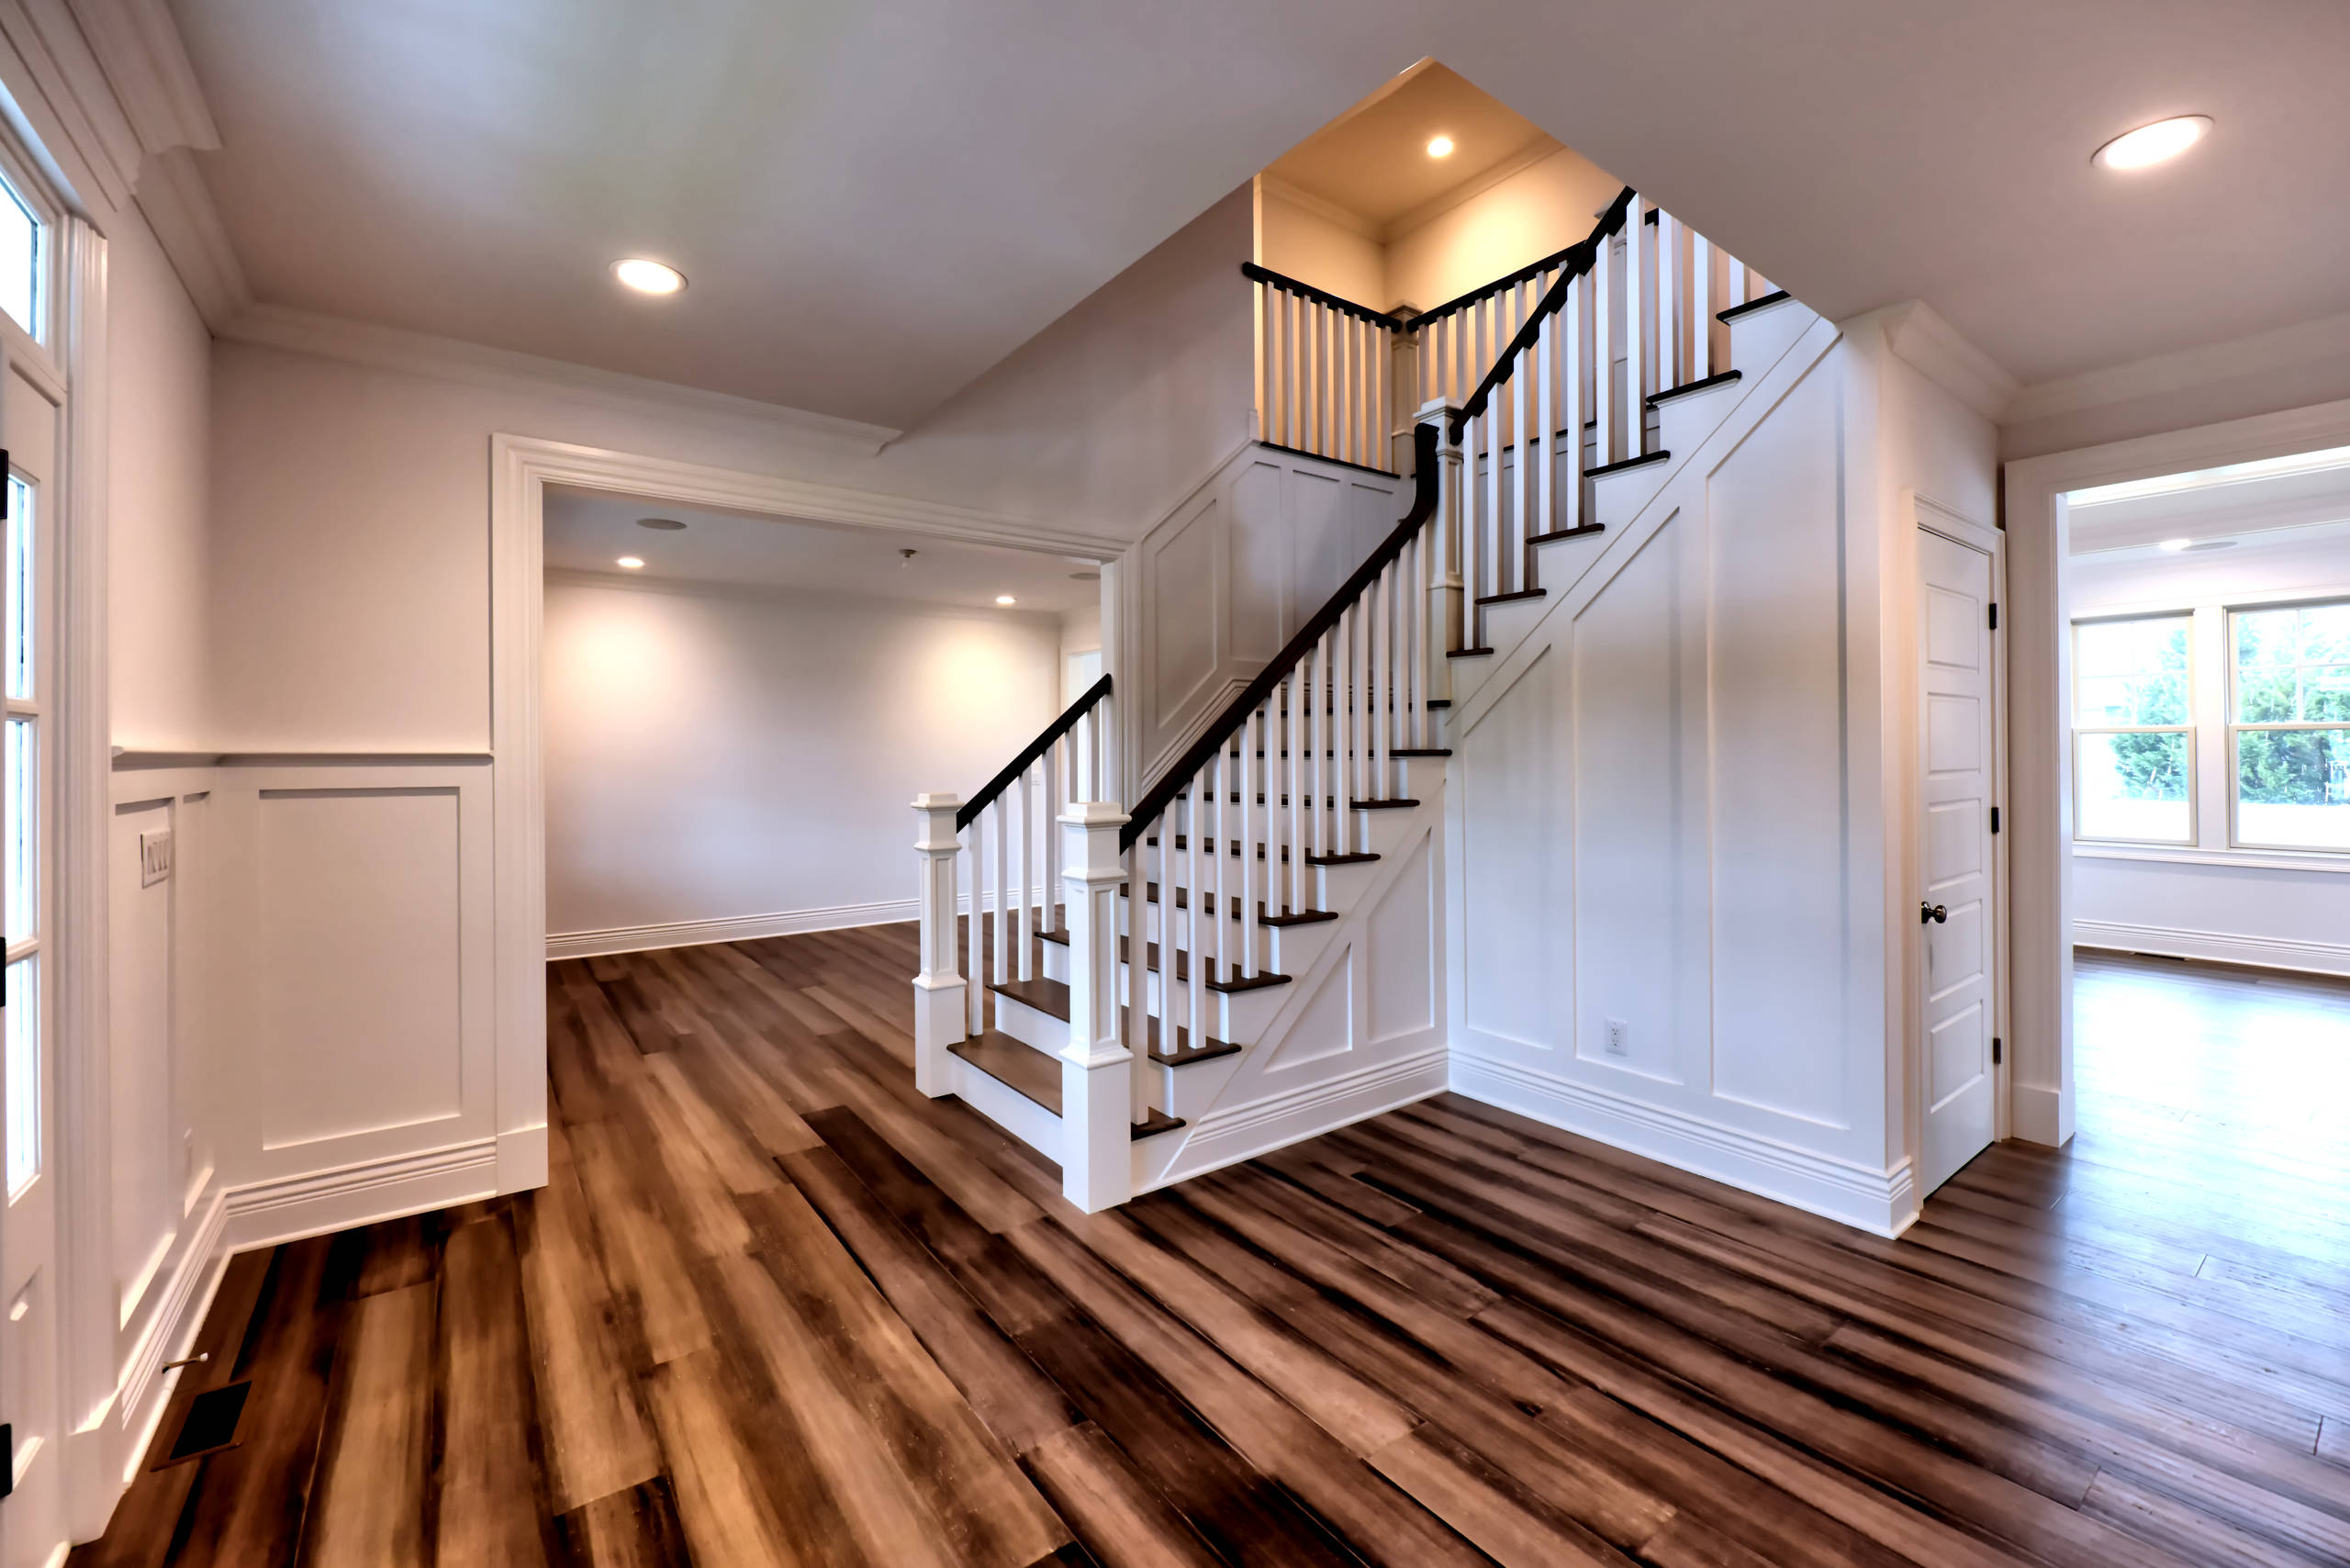 Interior Stairs and Railings